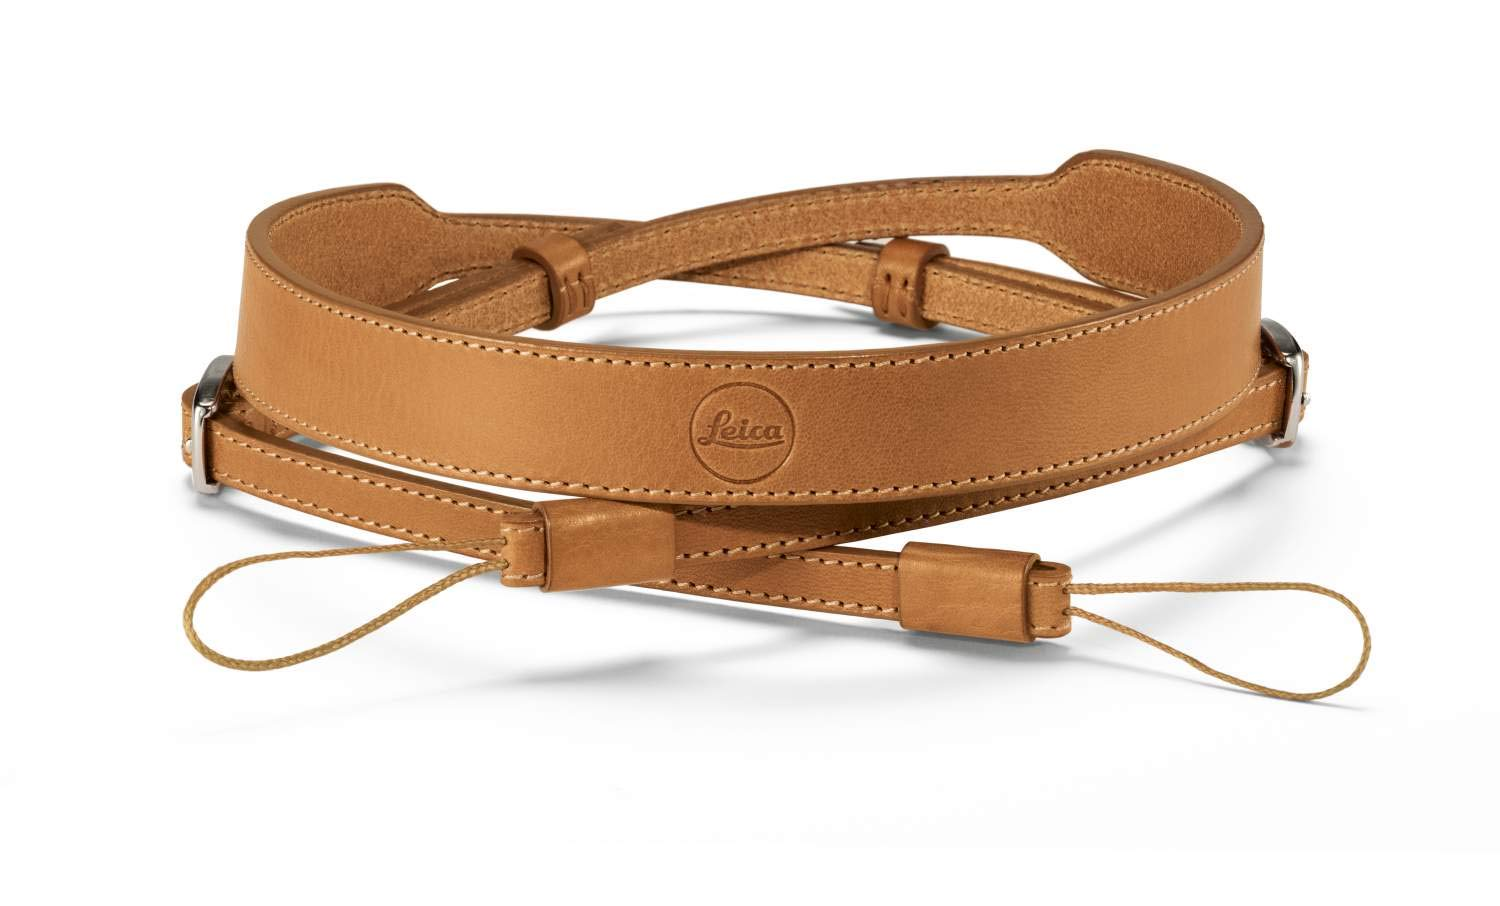 Leica D-Lux 7 Carrying Strap - Brown